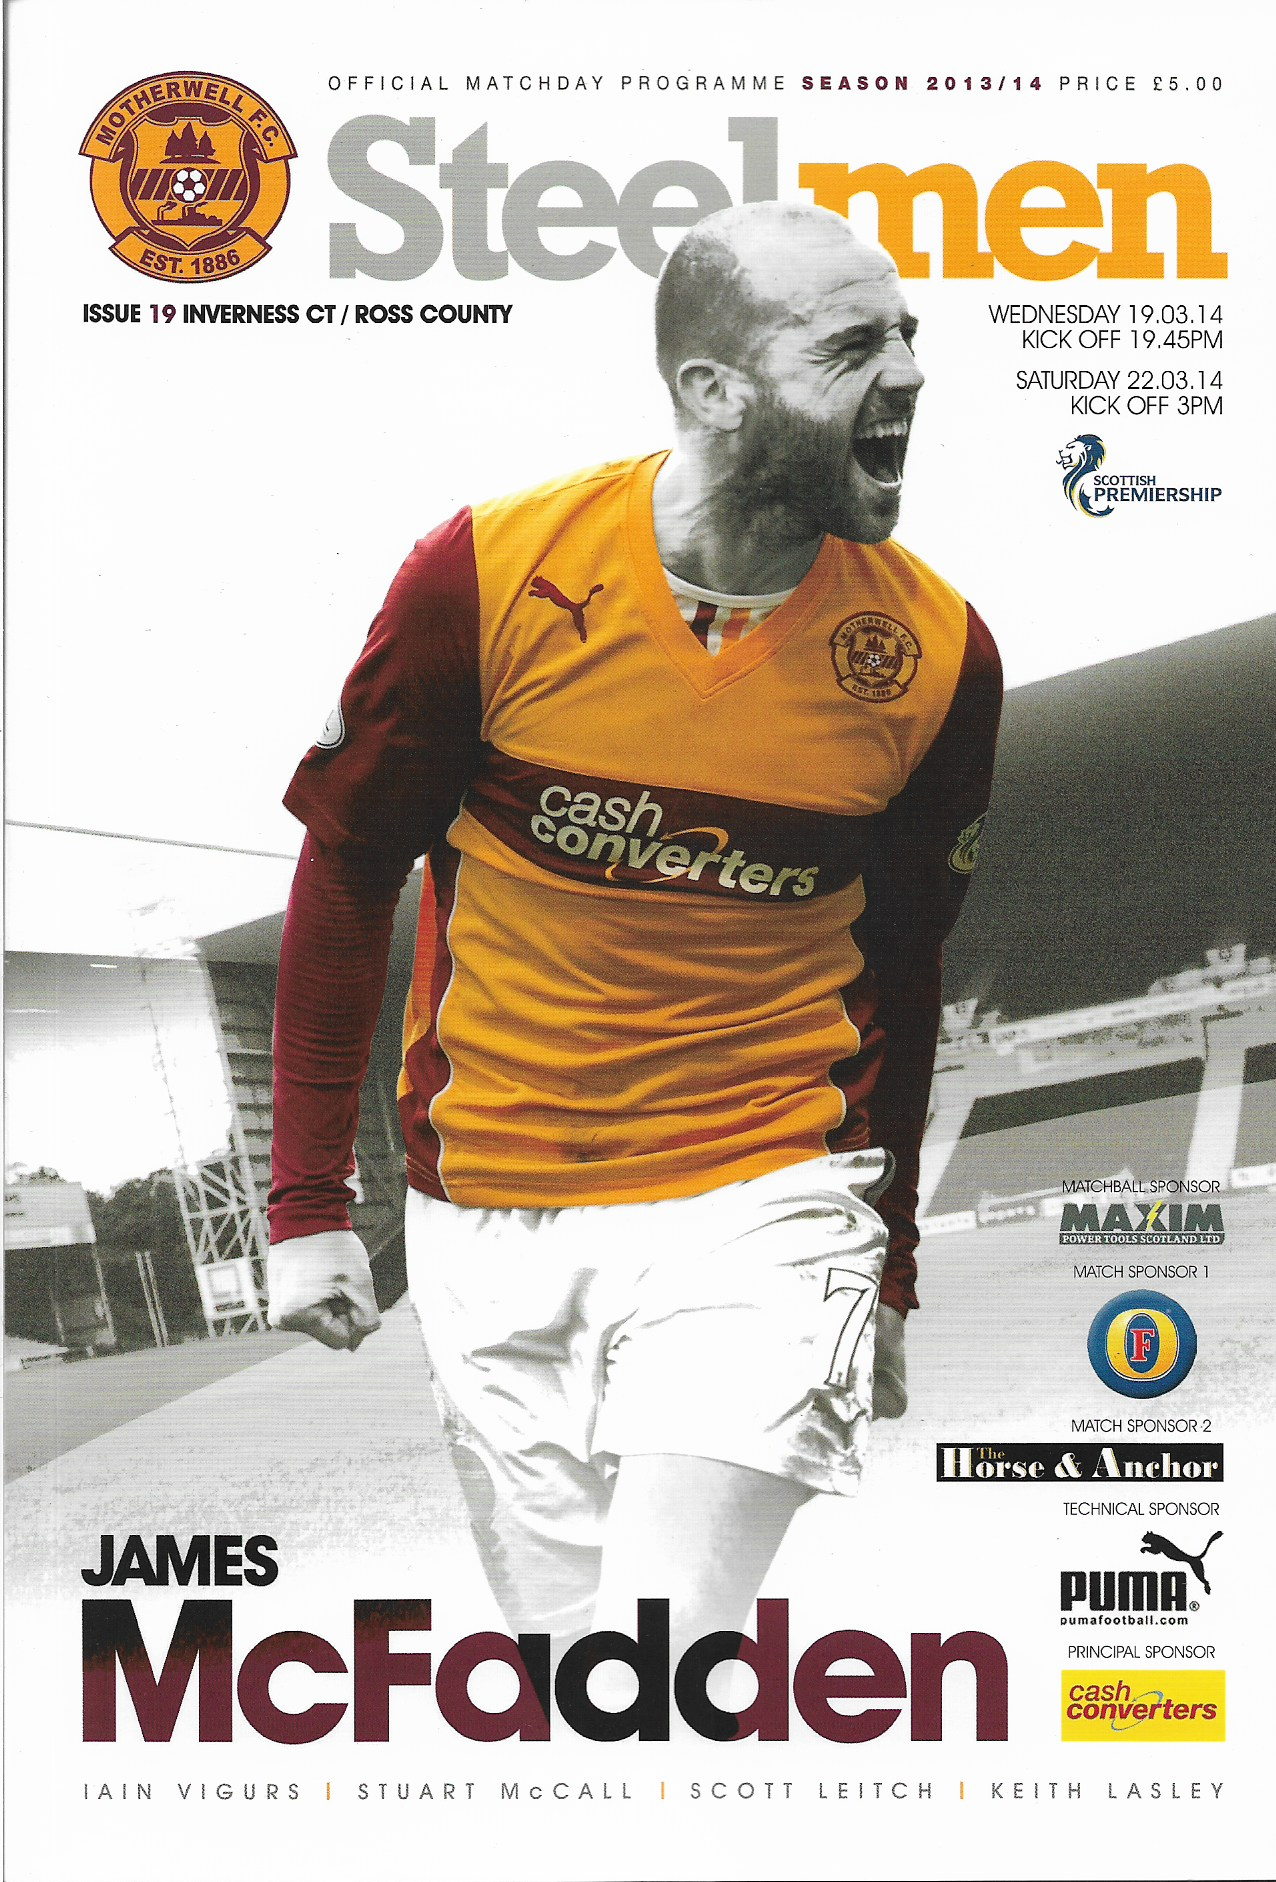 Programme Cover 2013/14